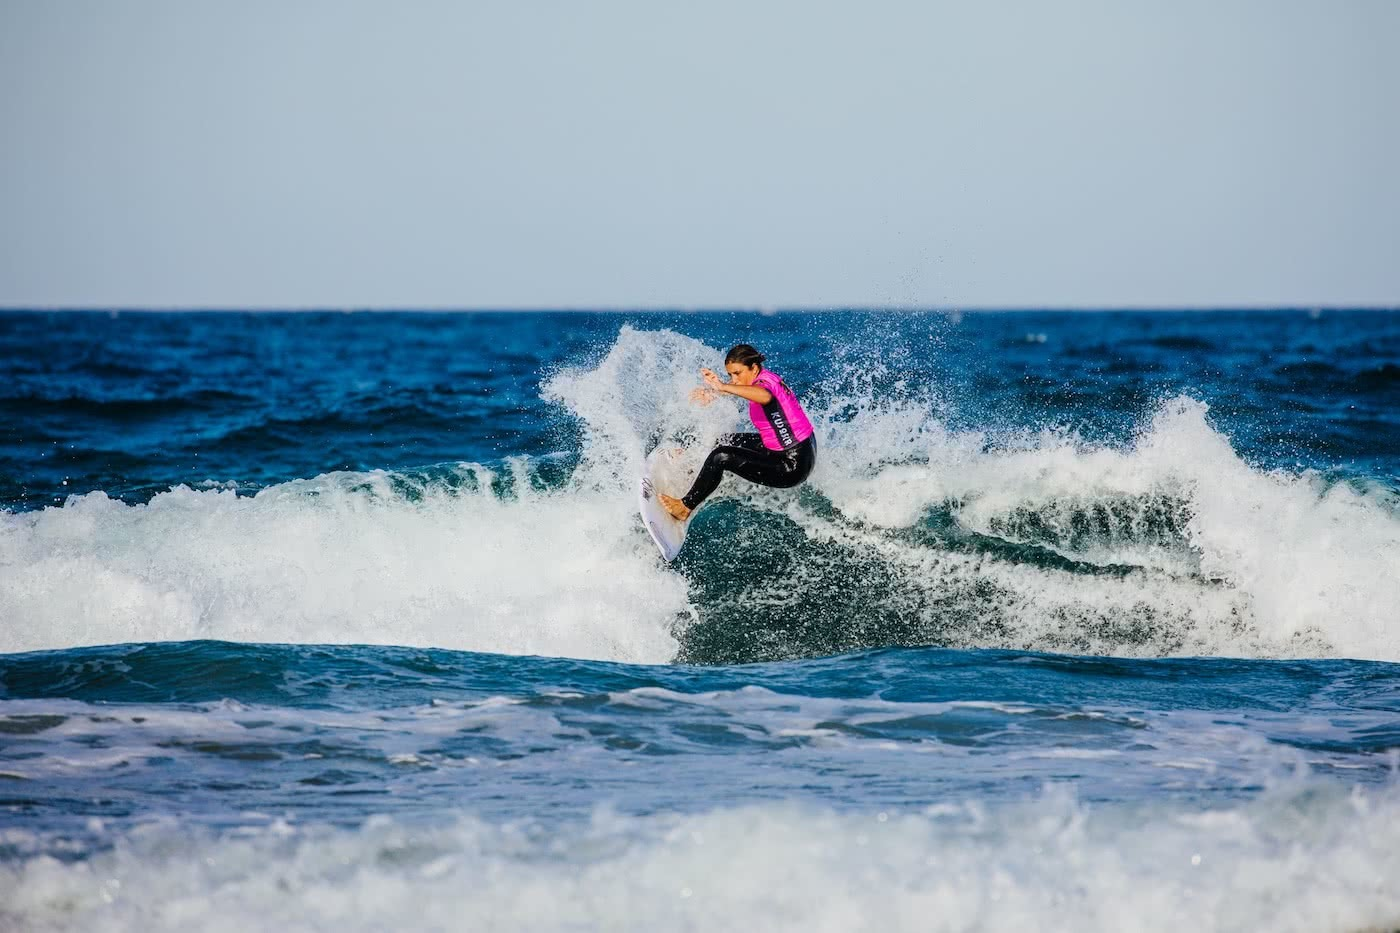 Get Barrelled For Good // Sign Up For The SurfAid Cup, surf, woman, ocean